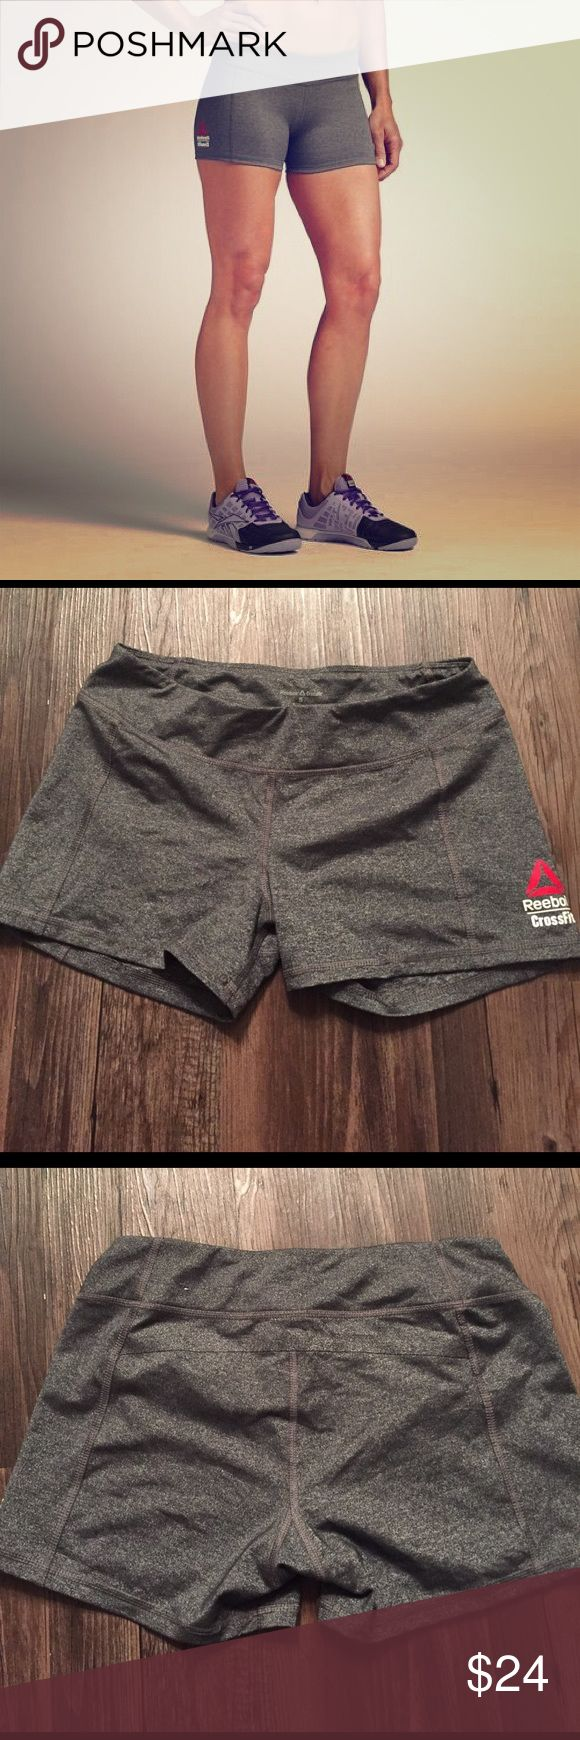 Reebok CrossFit Chase Bootie Short - Dark Heather Reebok CrossFit Chase Bootie Short - Dark Heather Gray - Size Small - Worn a handful of times, in excellent condition Reebok Shorts